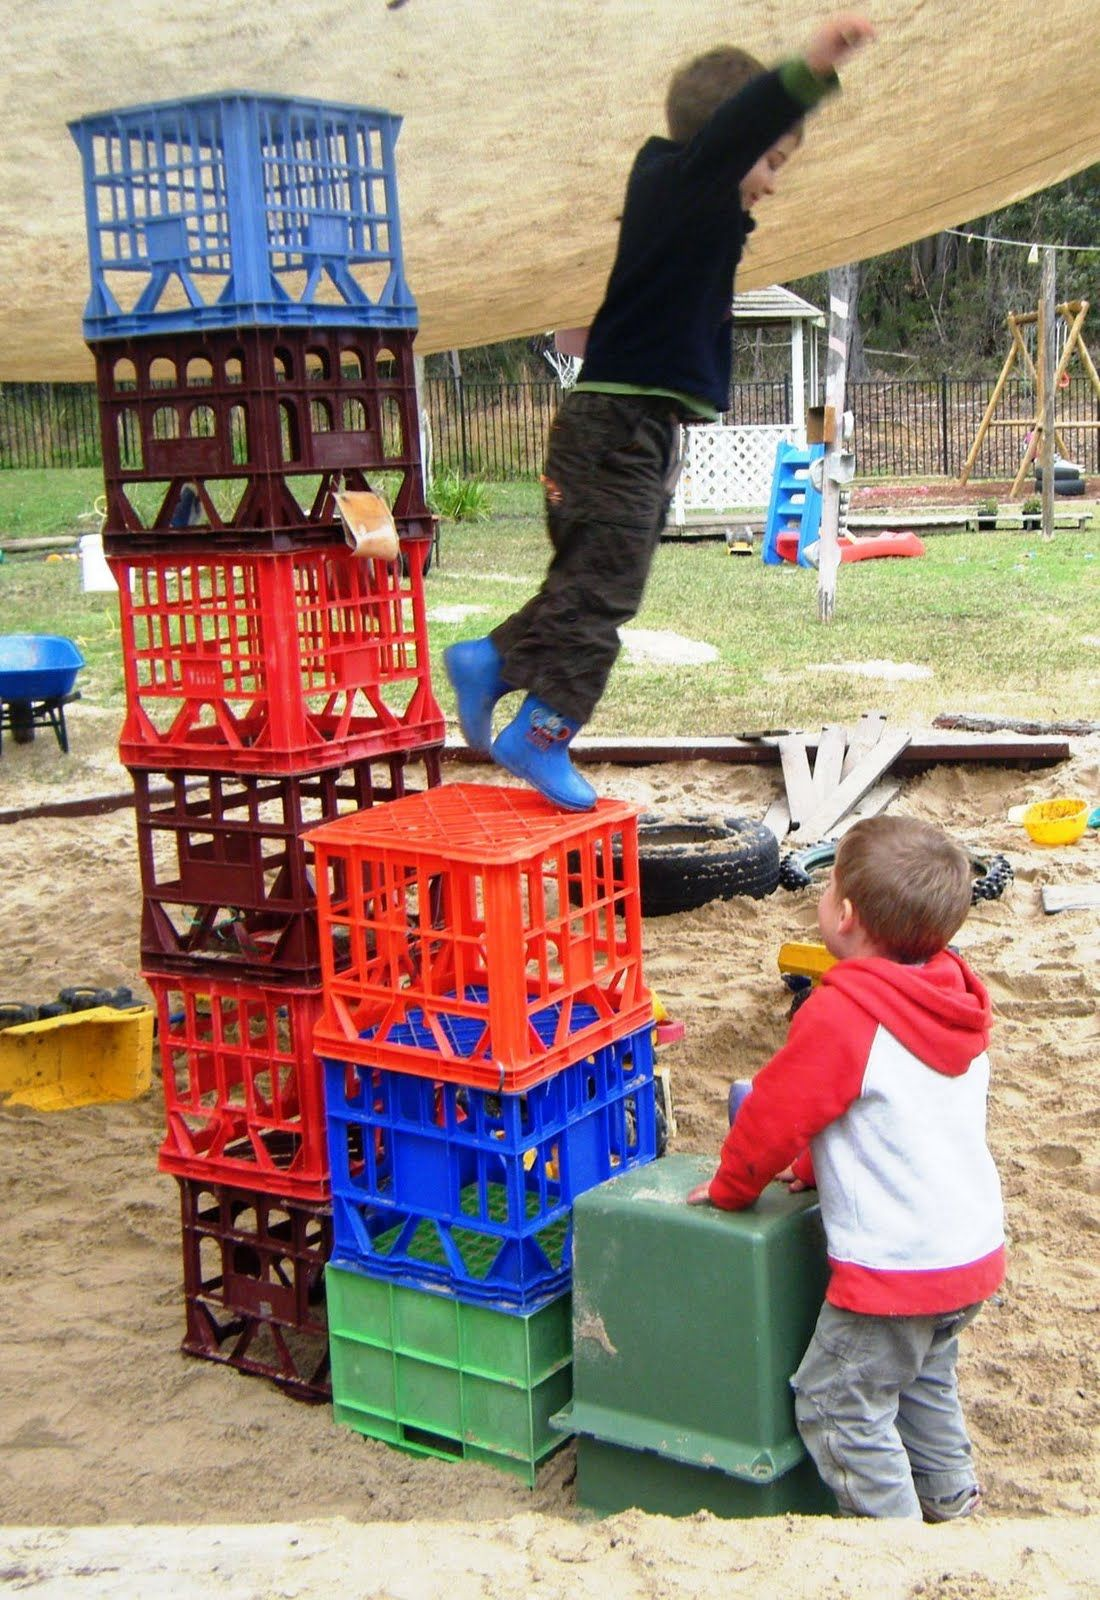 The focus of this photo is the crates for building and construction, as they are light weight, but larger and wider, an item for older kindergarten children.  Supervision would ensure children are not climbing upon them, but allow for imaginative construction and upper body strength and motor skills.